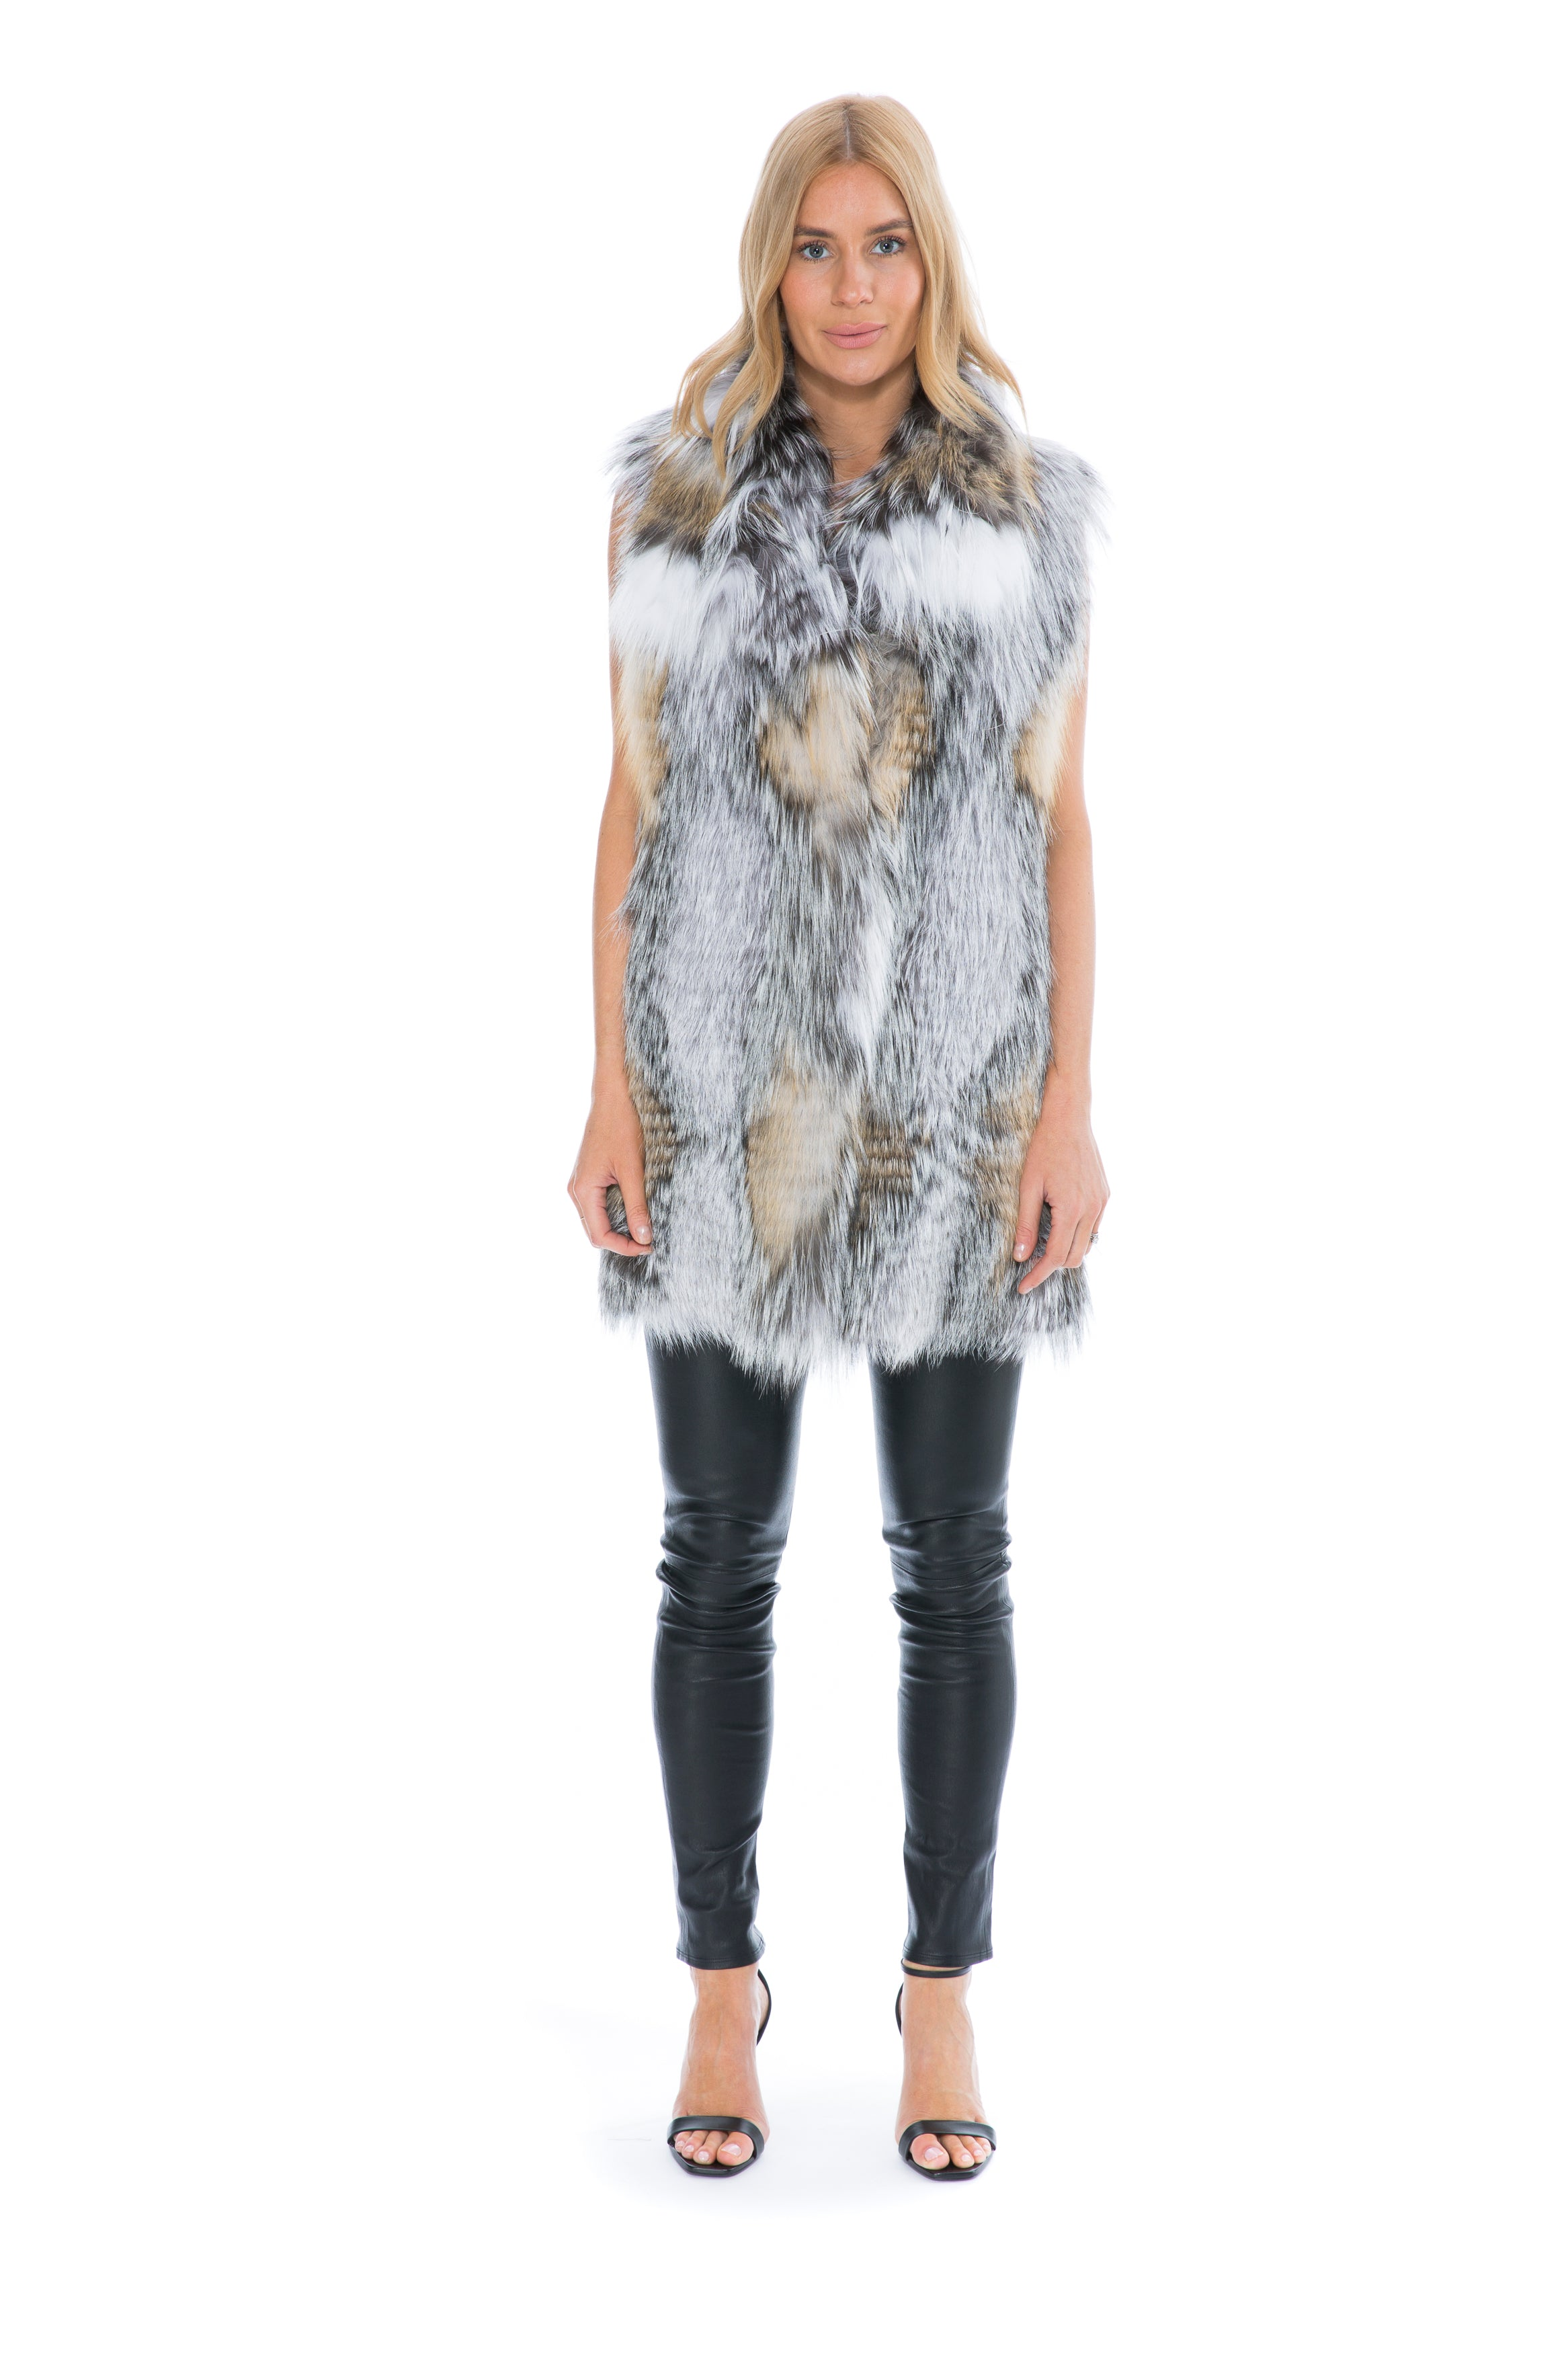 FOX FUR VEST IN MIX NATURAL